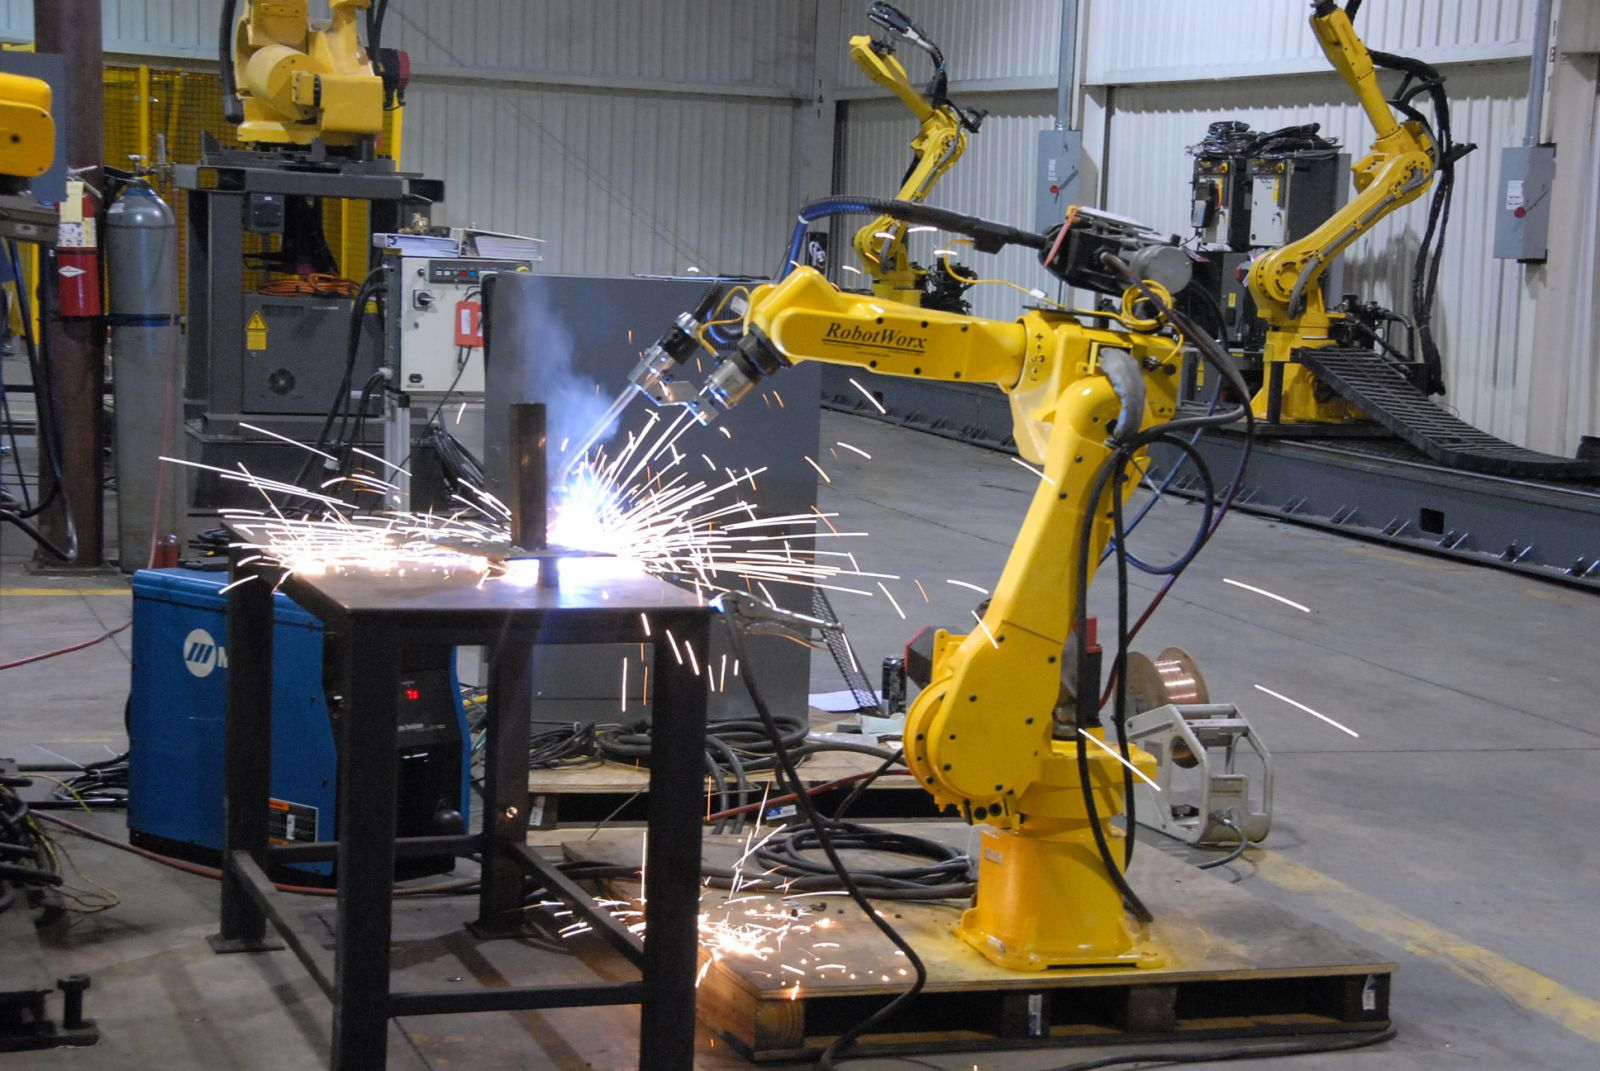 An Industrial Robot Appeared At The Kharkiv Plant The